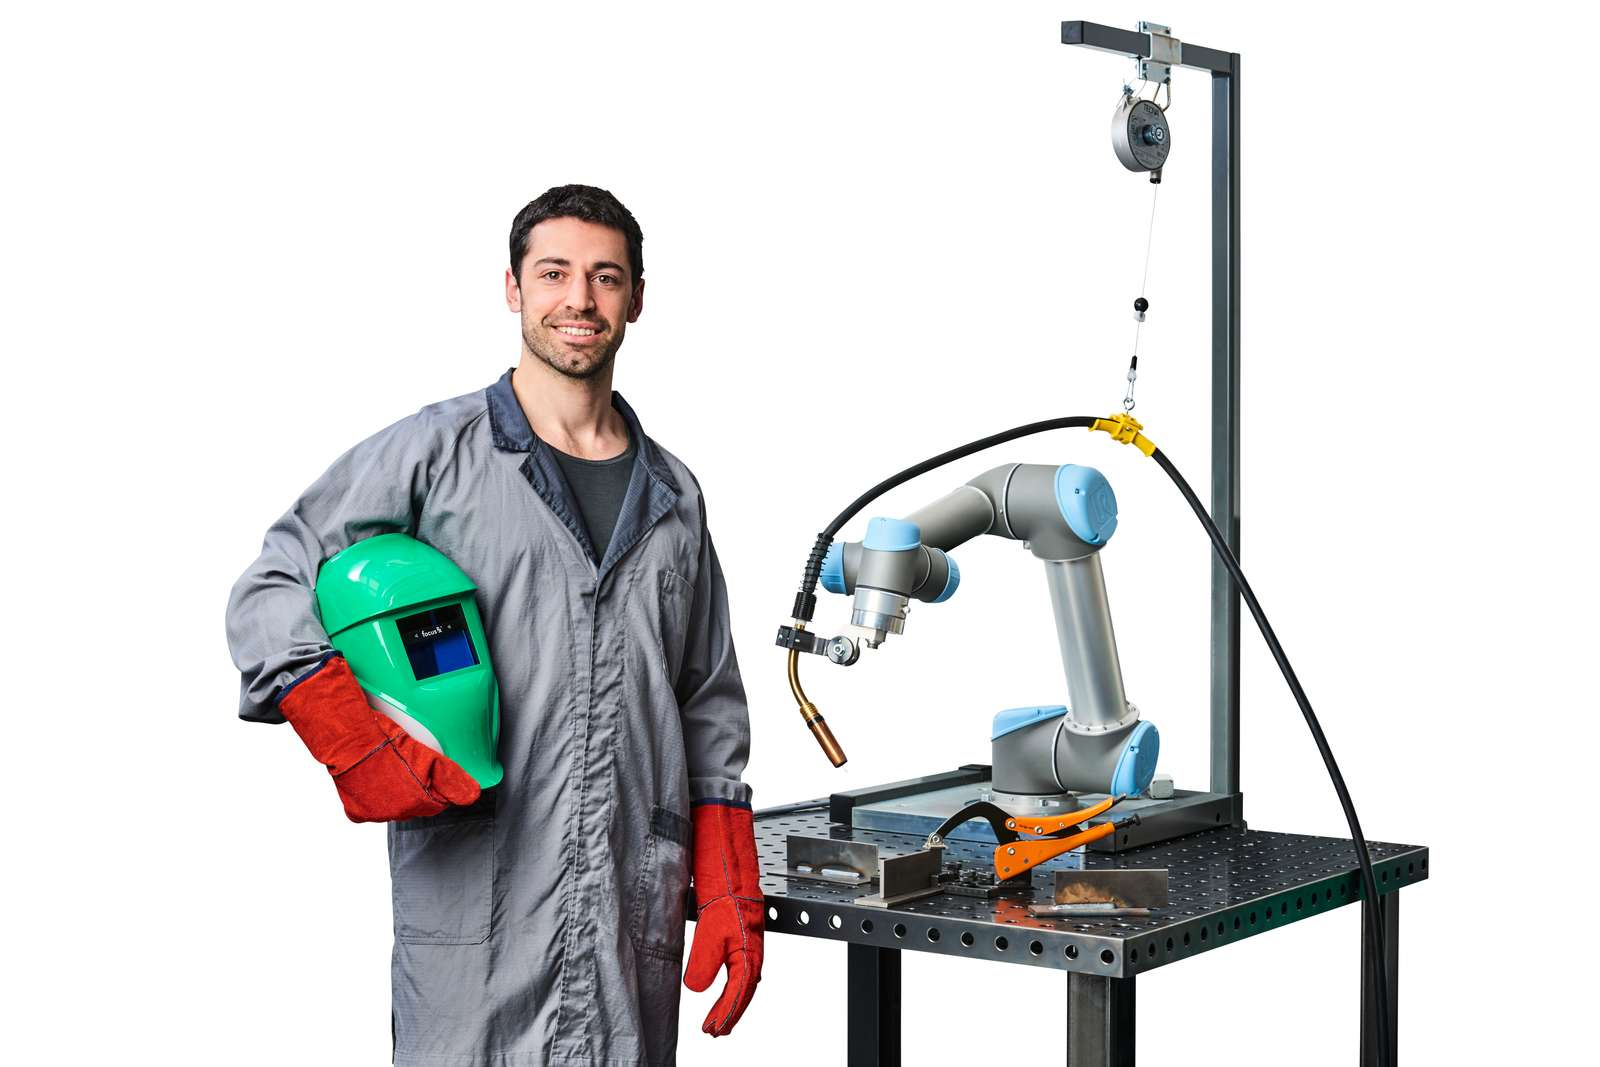 Collaborative robots offer cost-effective, easy-to-implement flexibility for a wide range of fabrication processes, with safe side-by-side deployment alongside human workers.